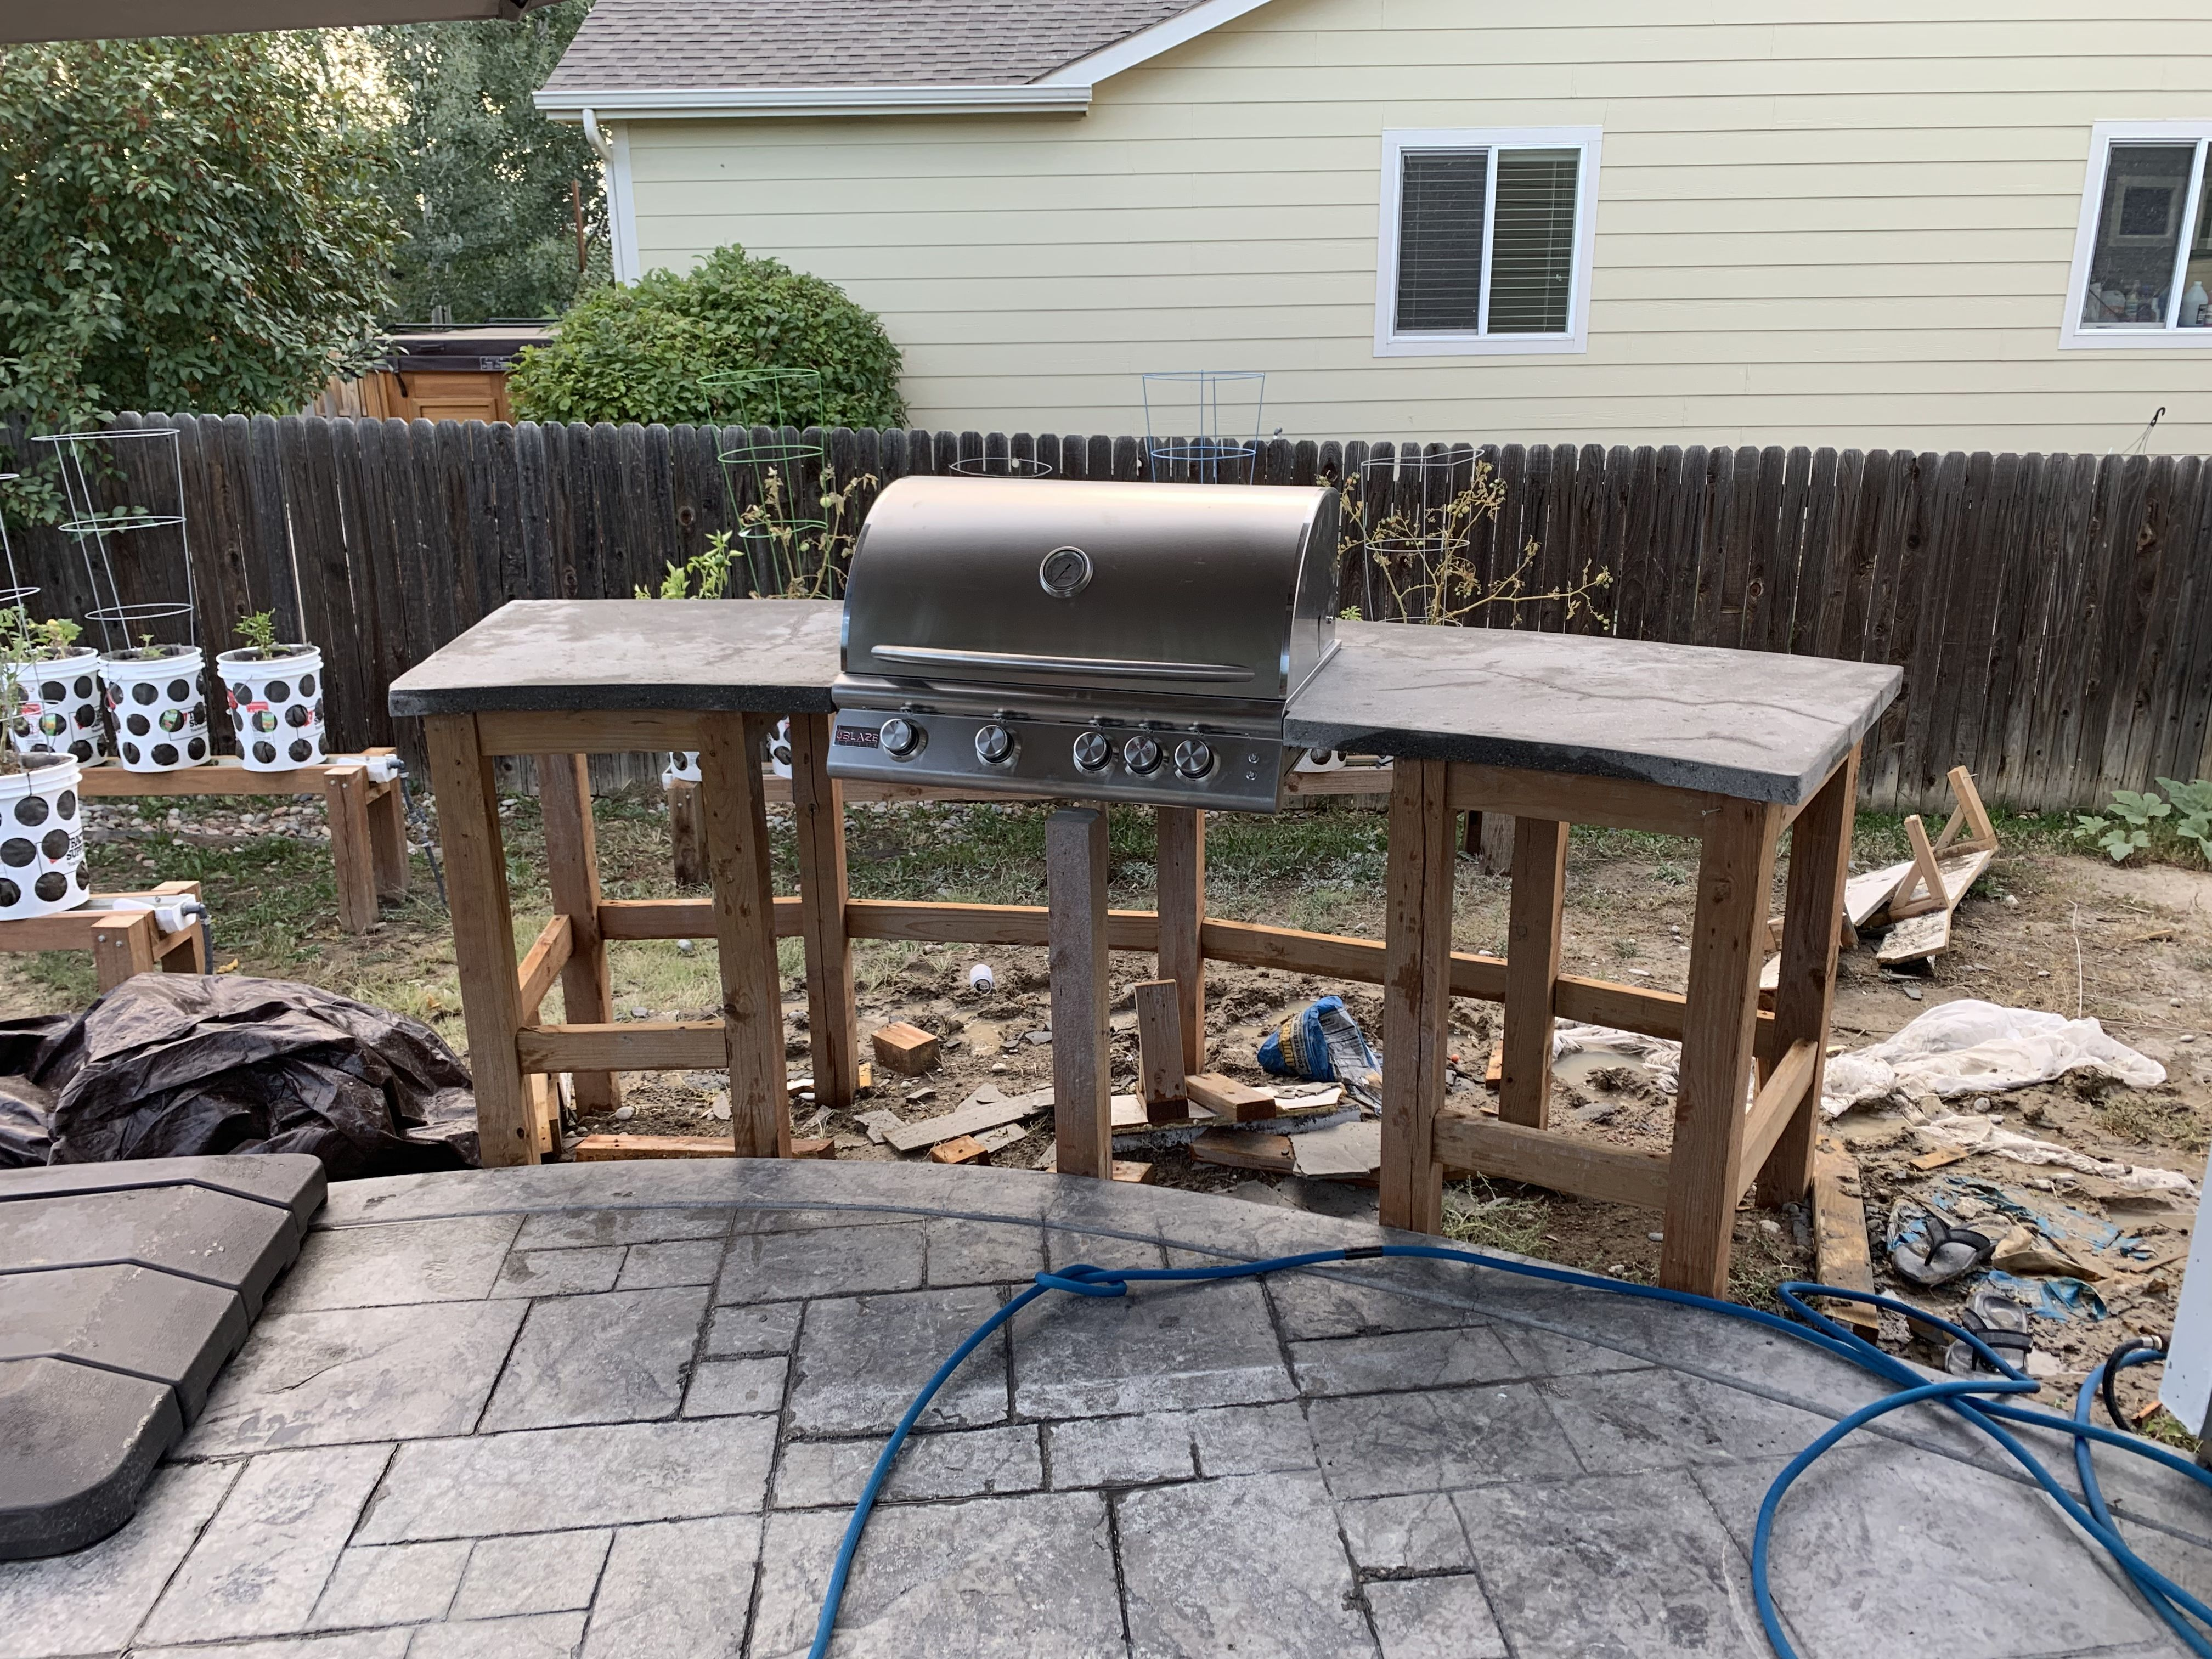 Outdoor Kitchen Island Build With Built In Grill Outdoor Kitchen Island Patio Projects Built In Grill